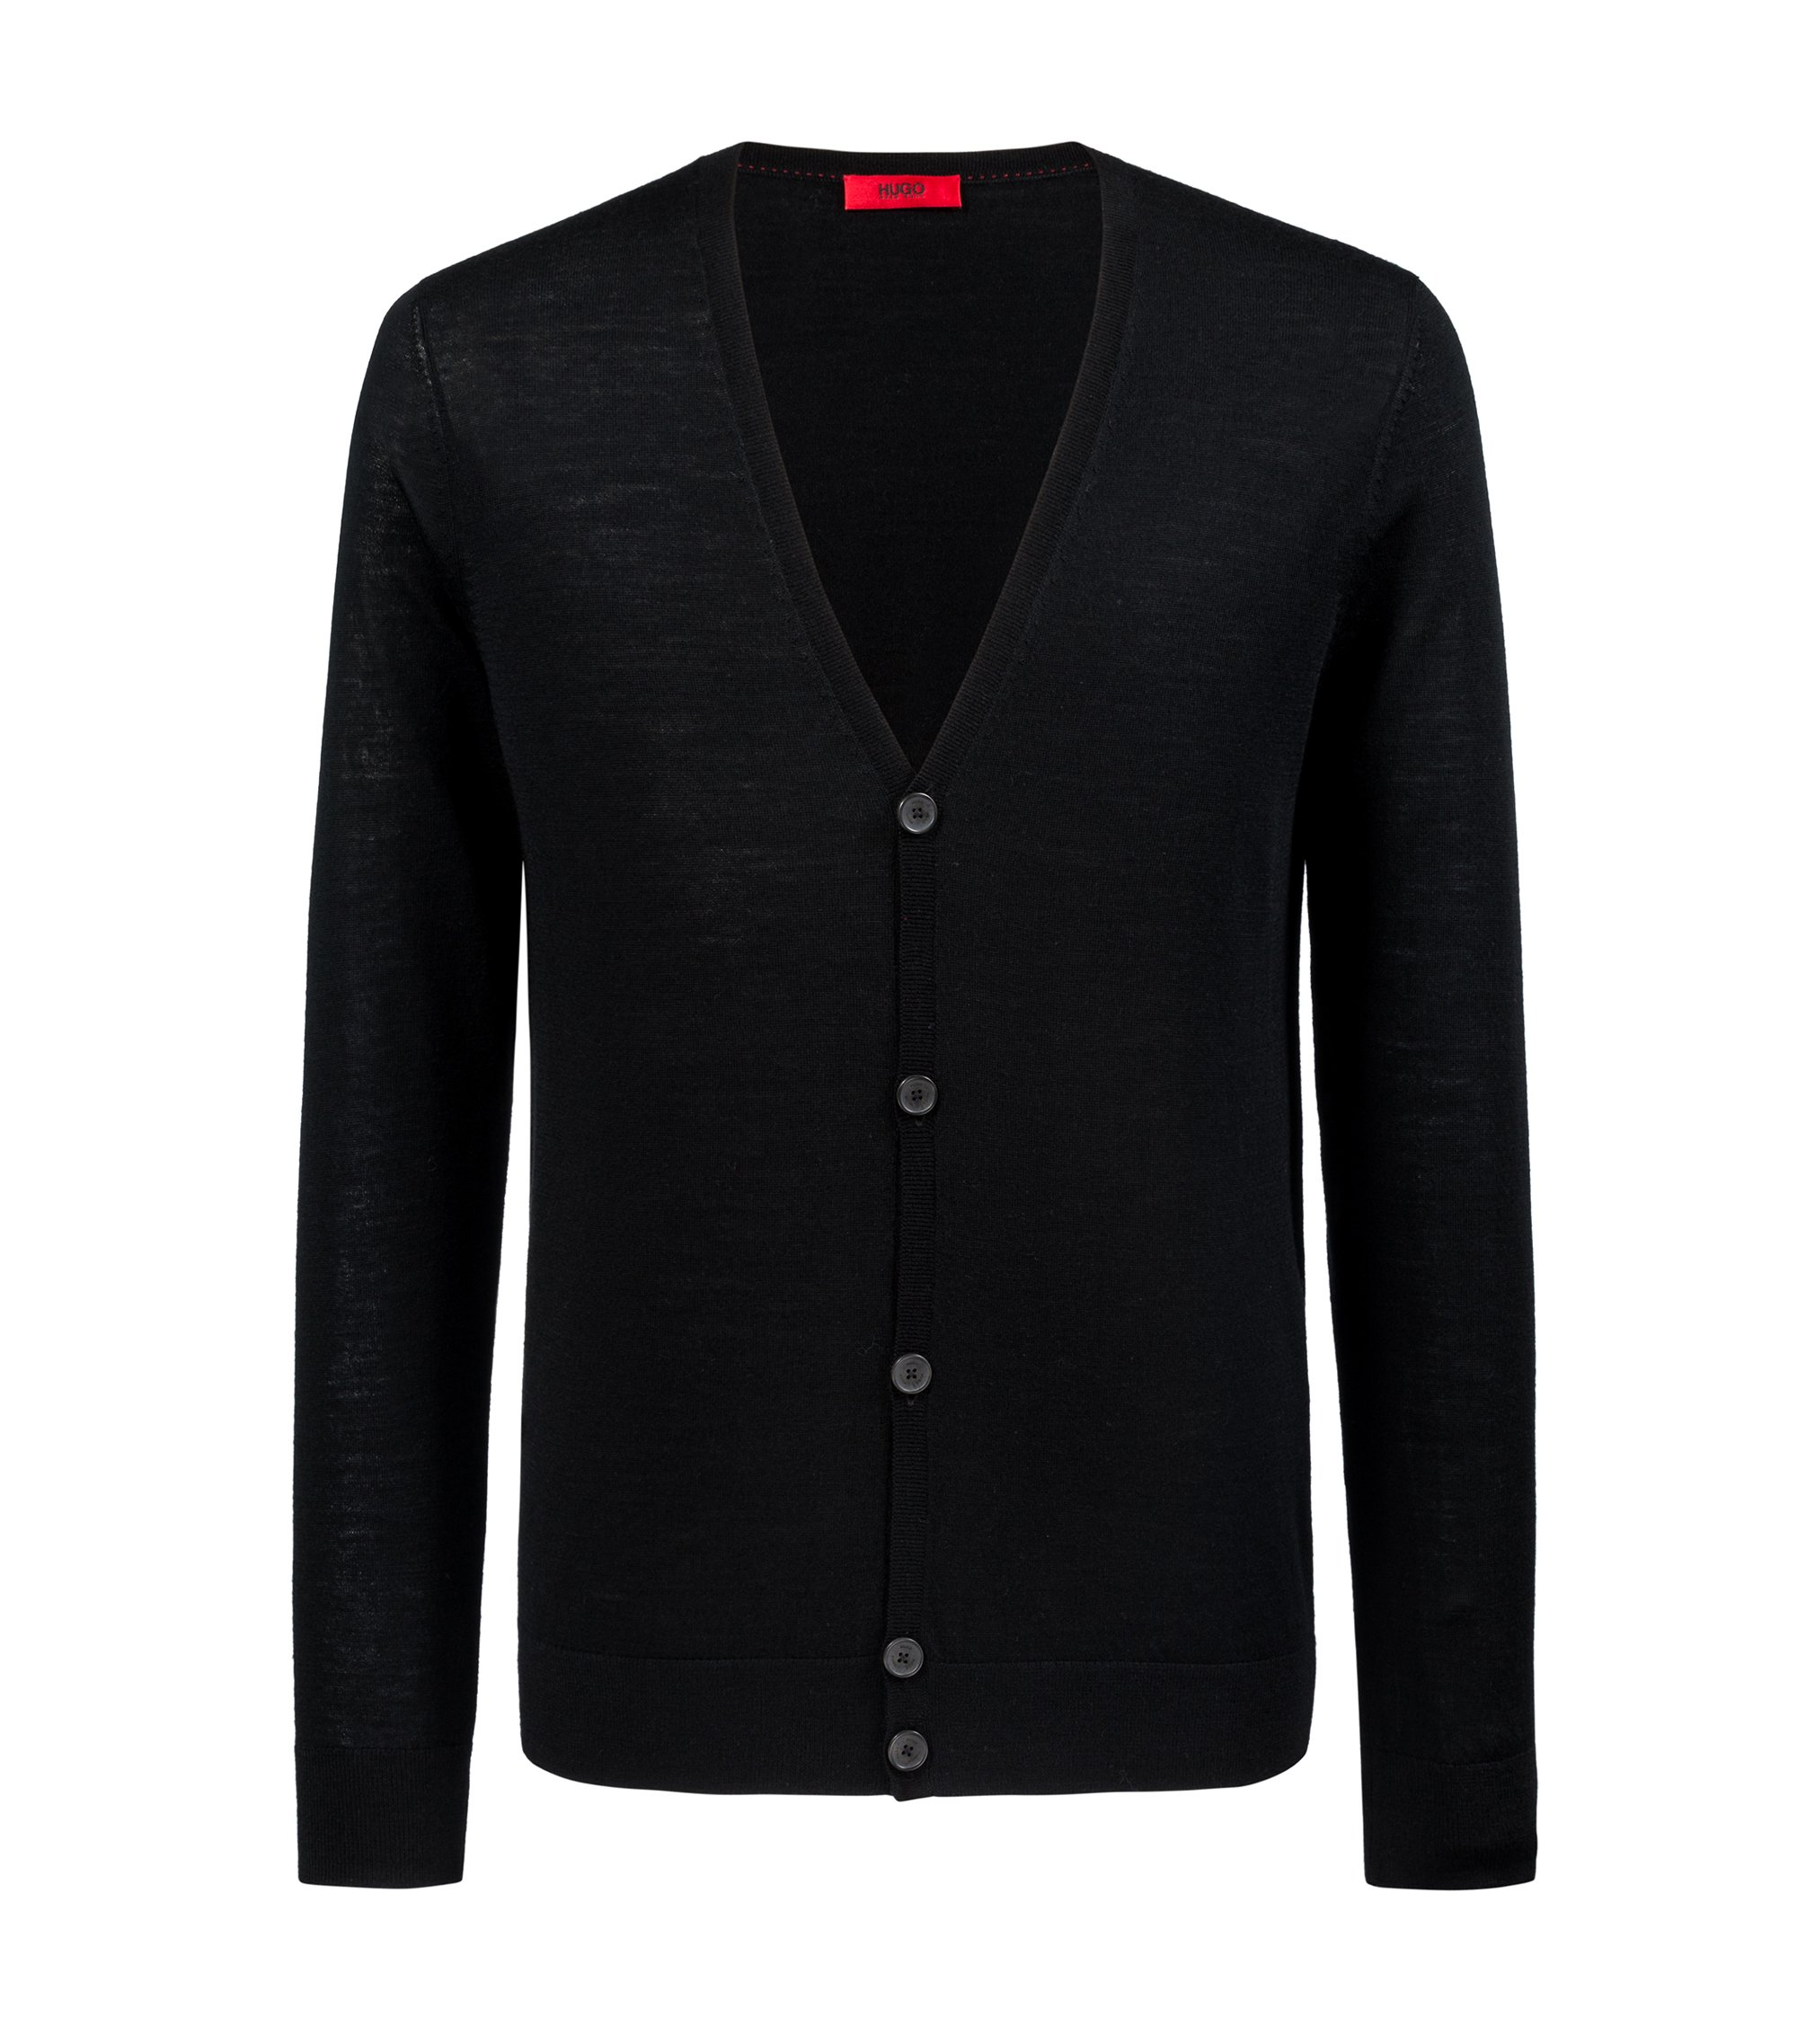 Slim-fit cardigan in a Merino wool blend, Black